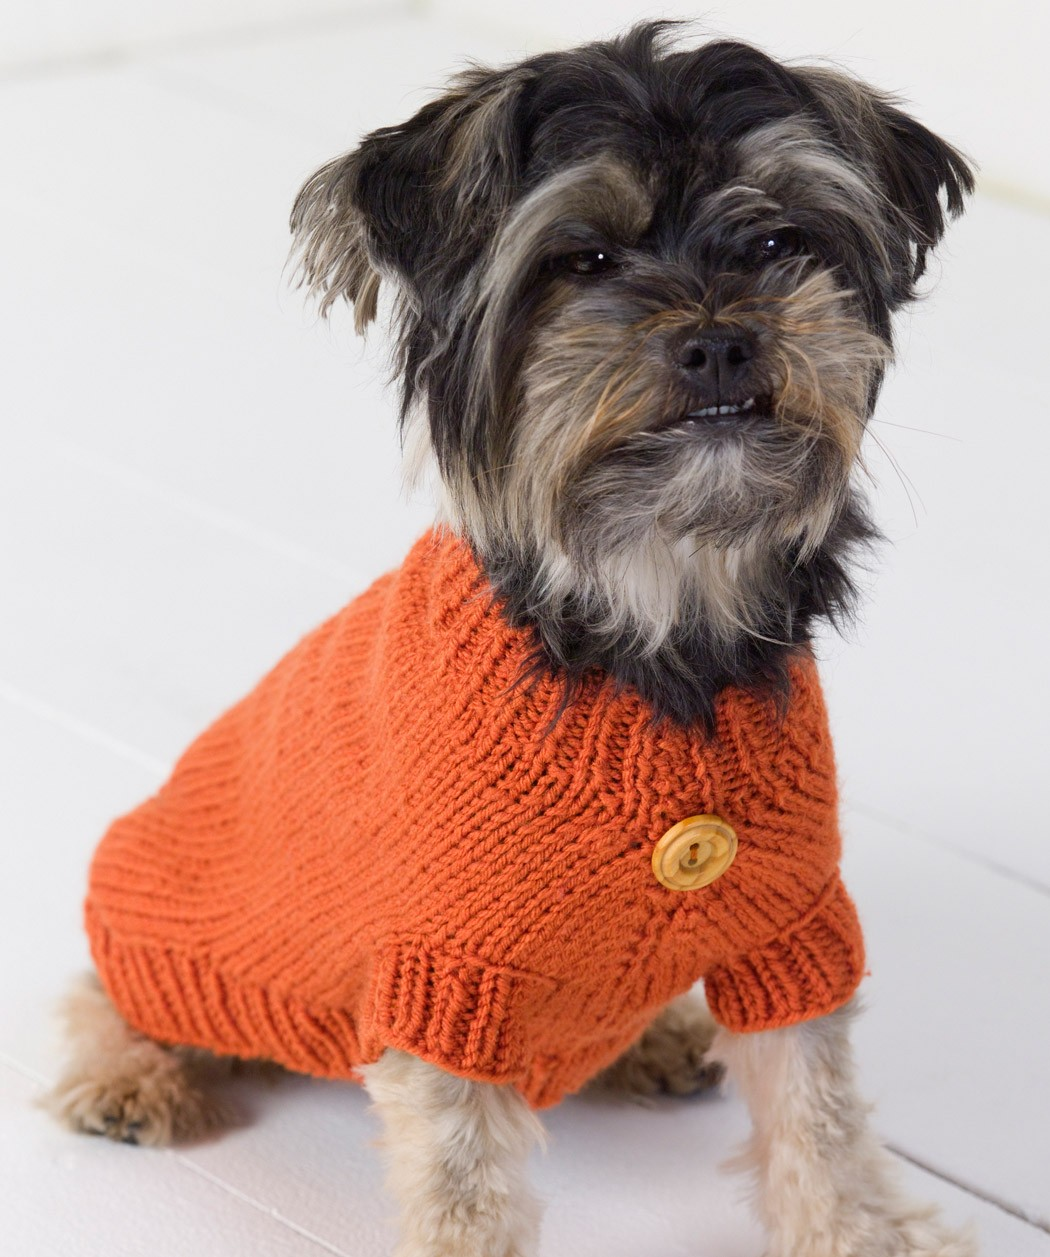 Dog sweater knitting pattern cute small dog sweater dog - Knitting for dogs sweaters ...